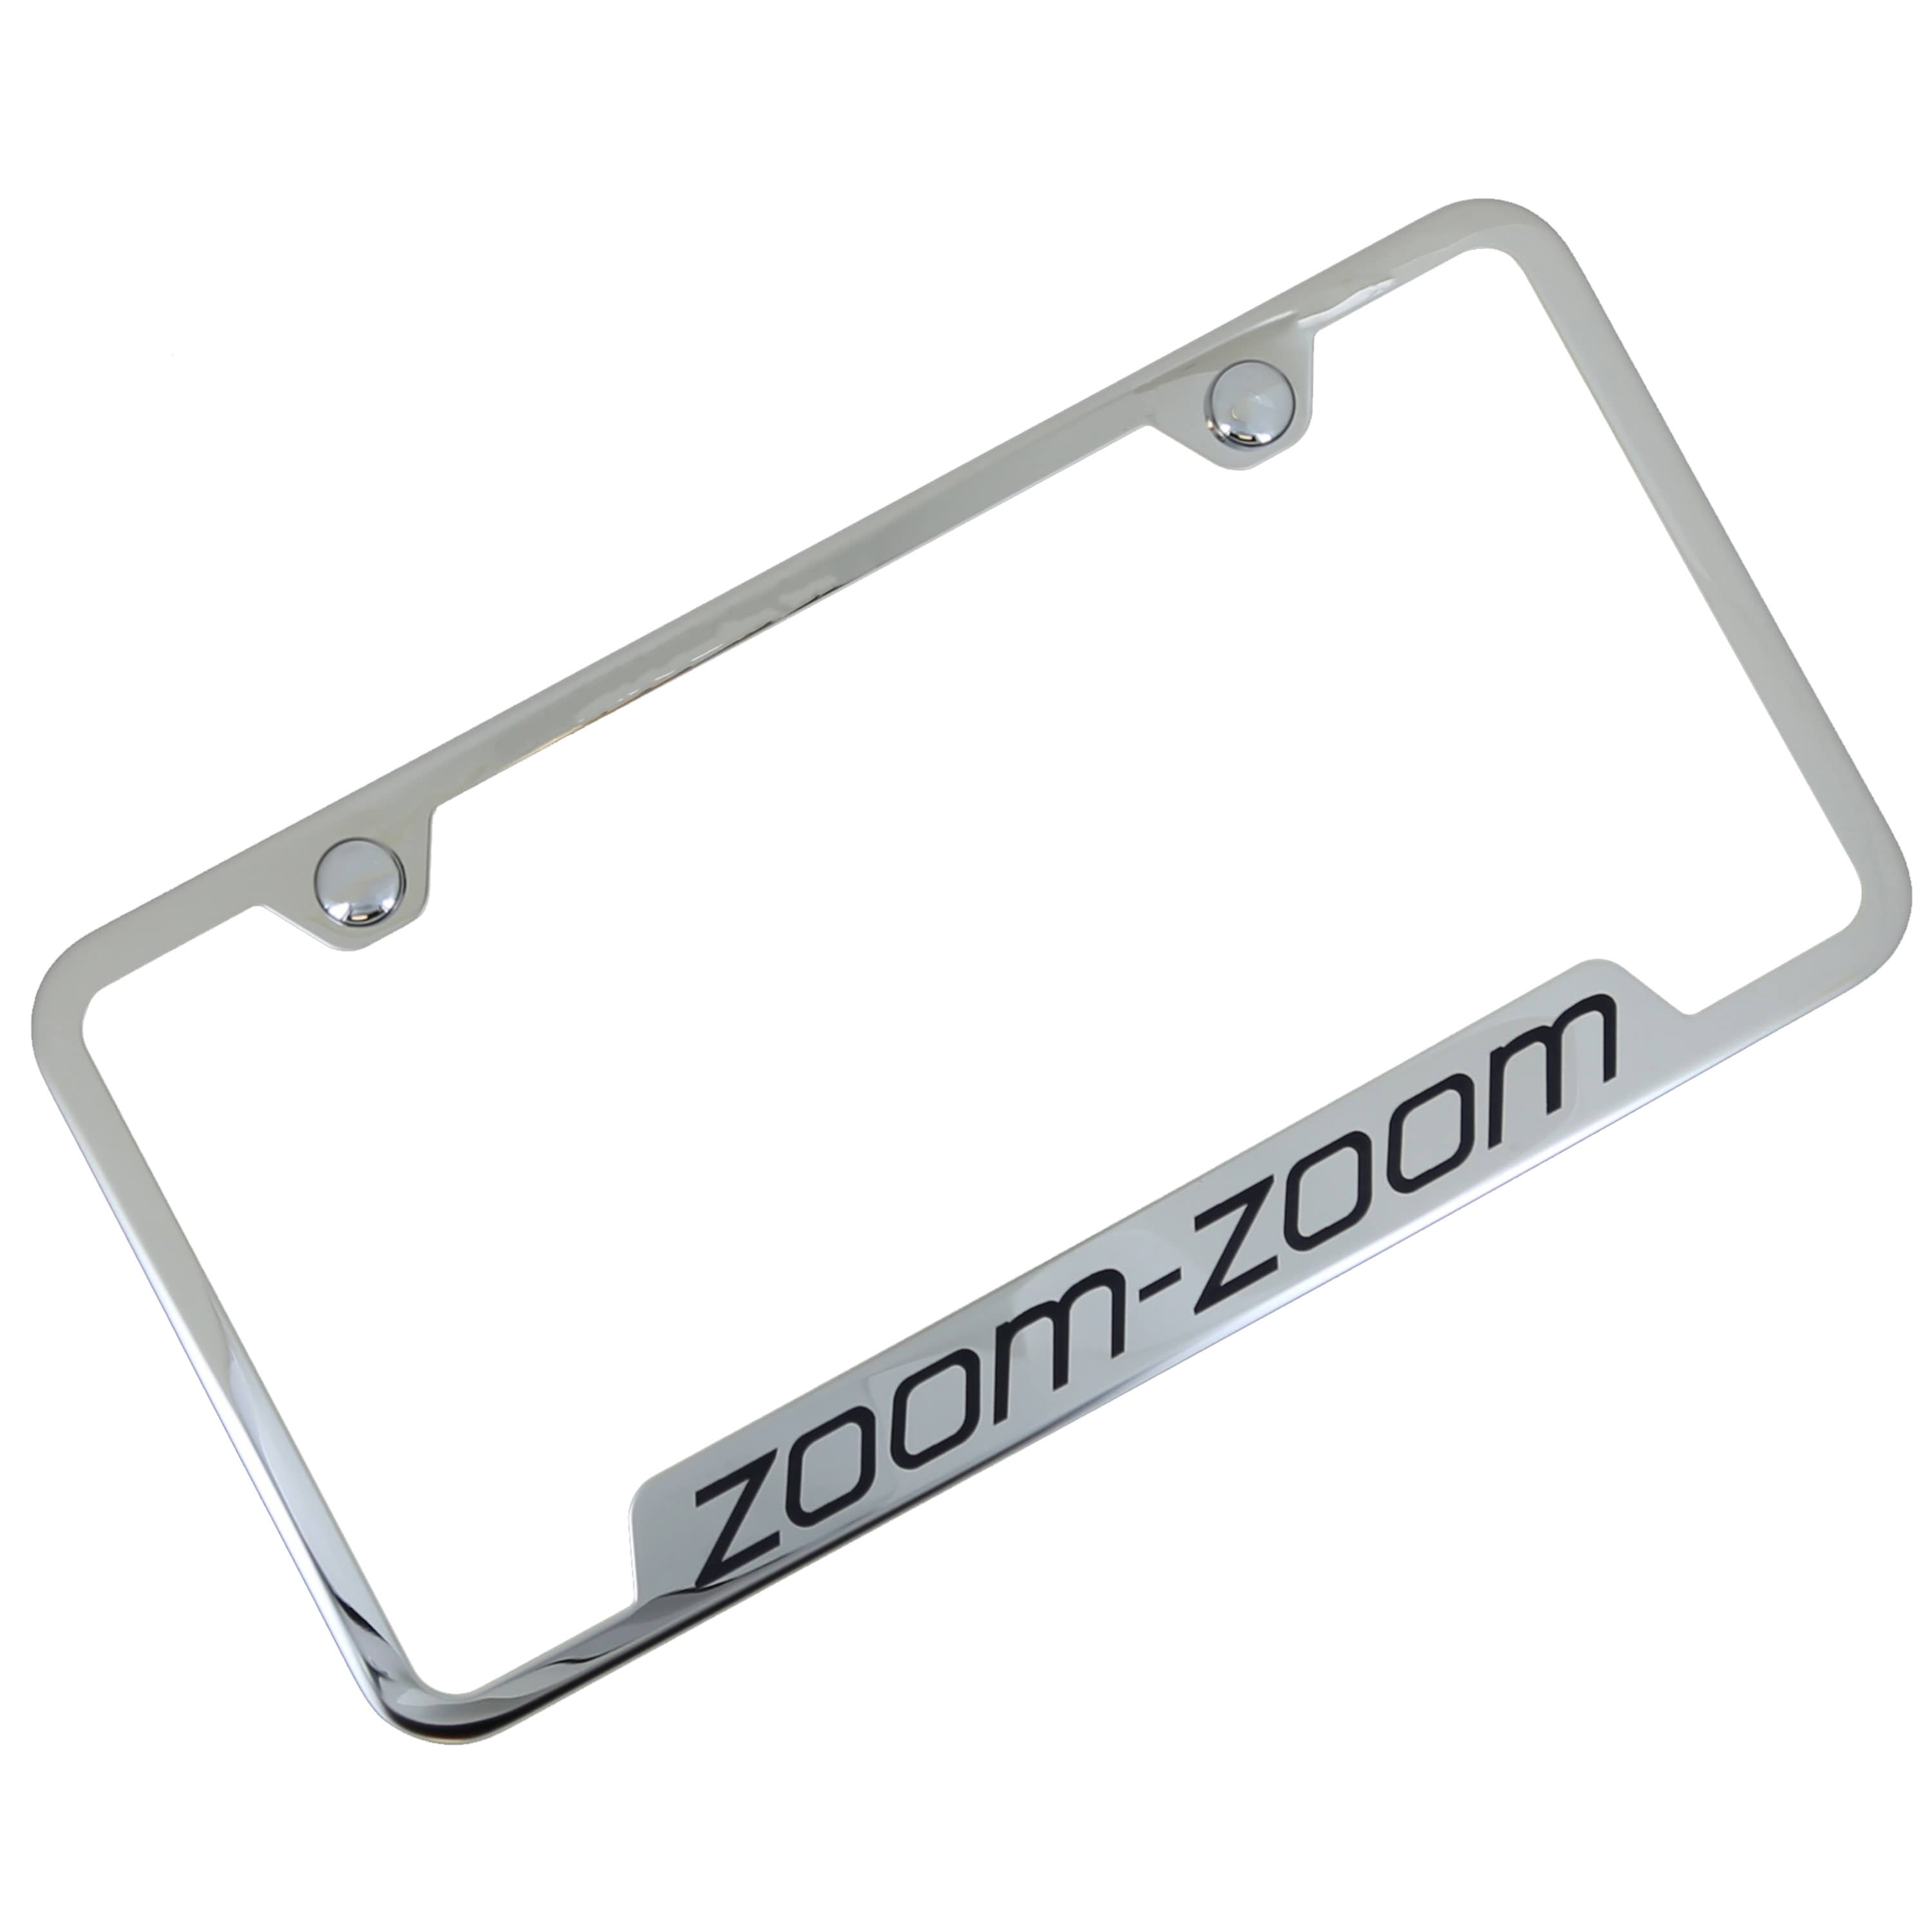 Mazda Zoom Zoom Cut Out License Plate Frame (Chrome) - Custom Werks